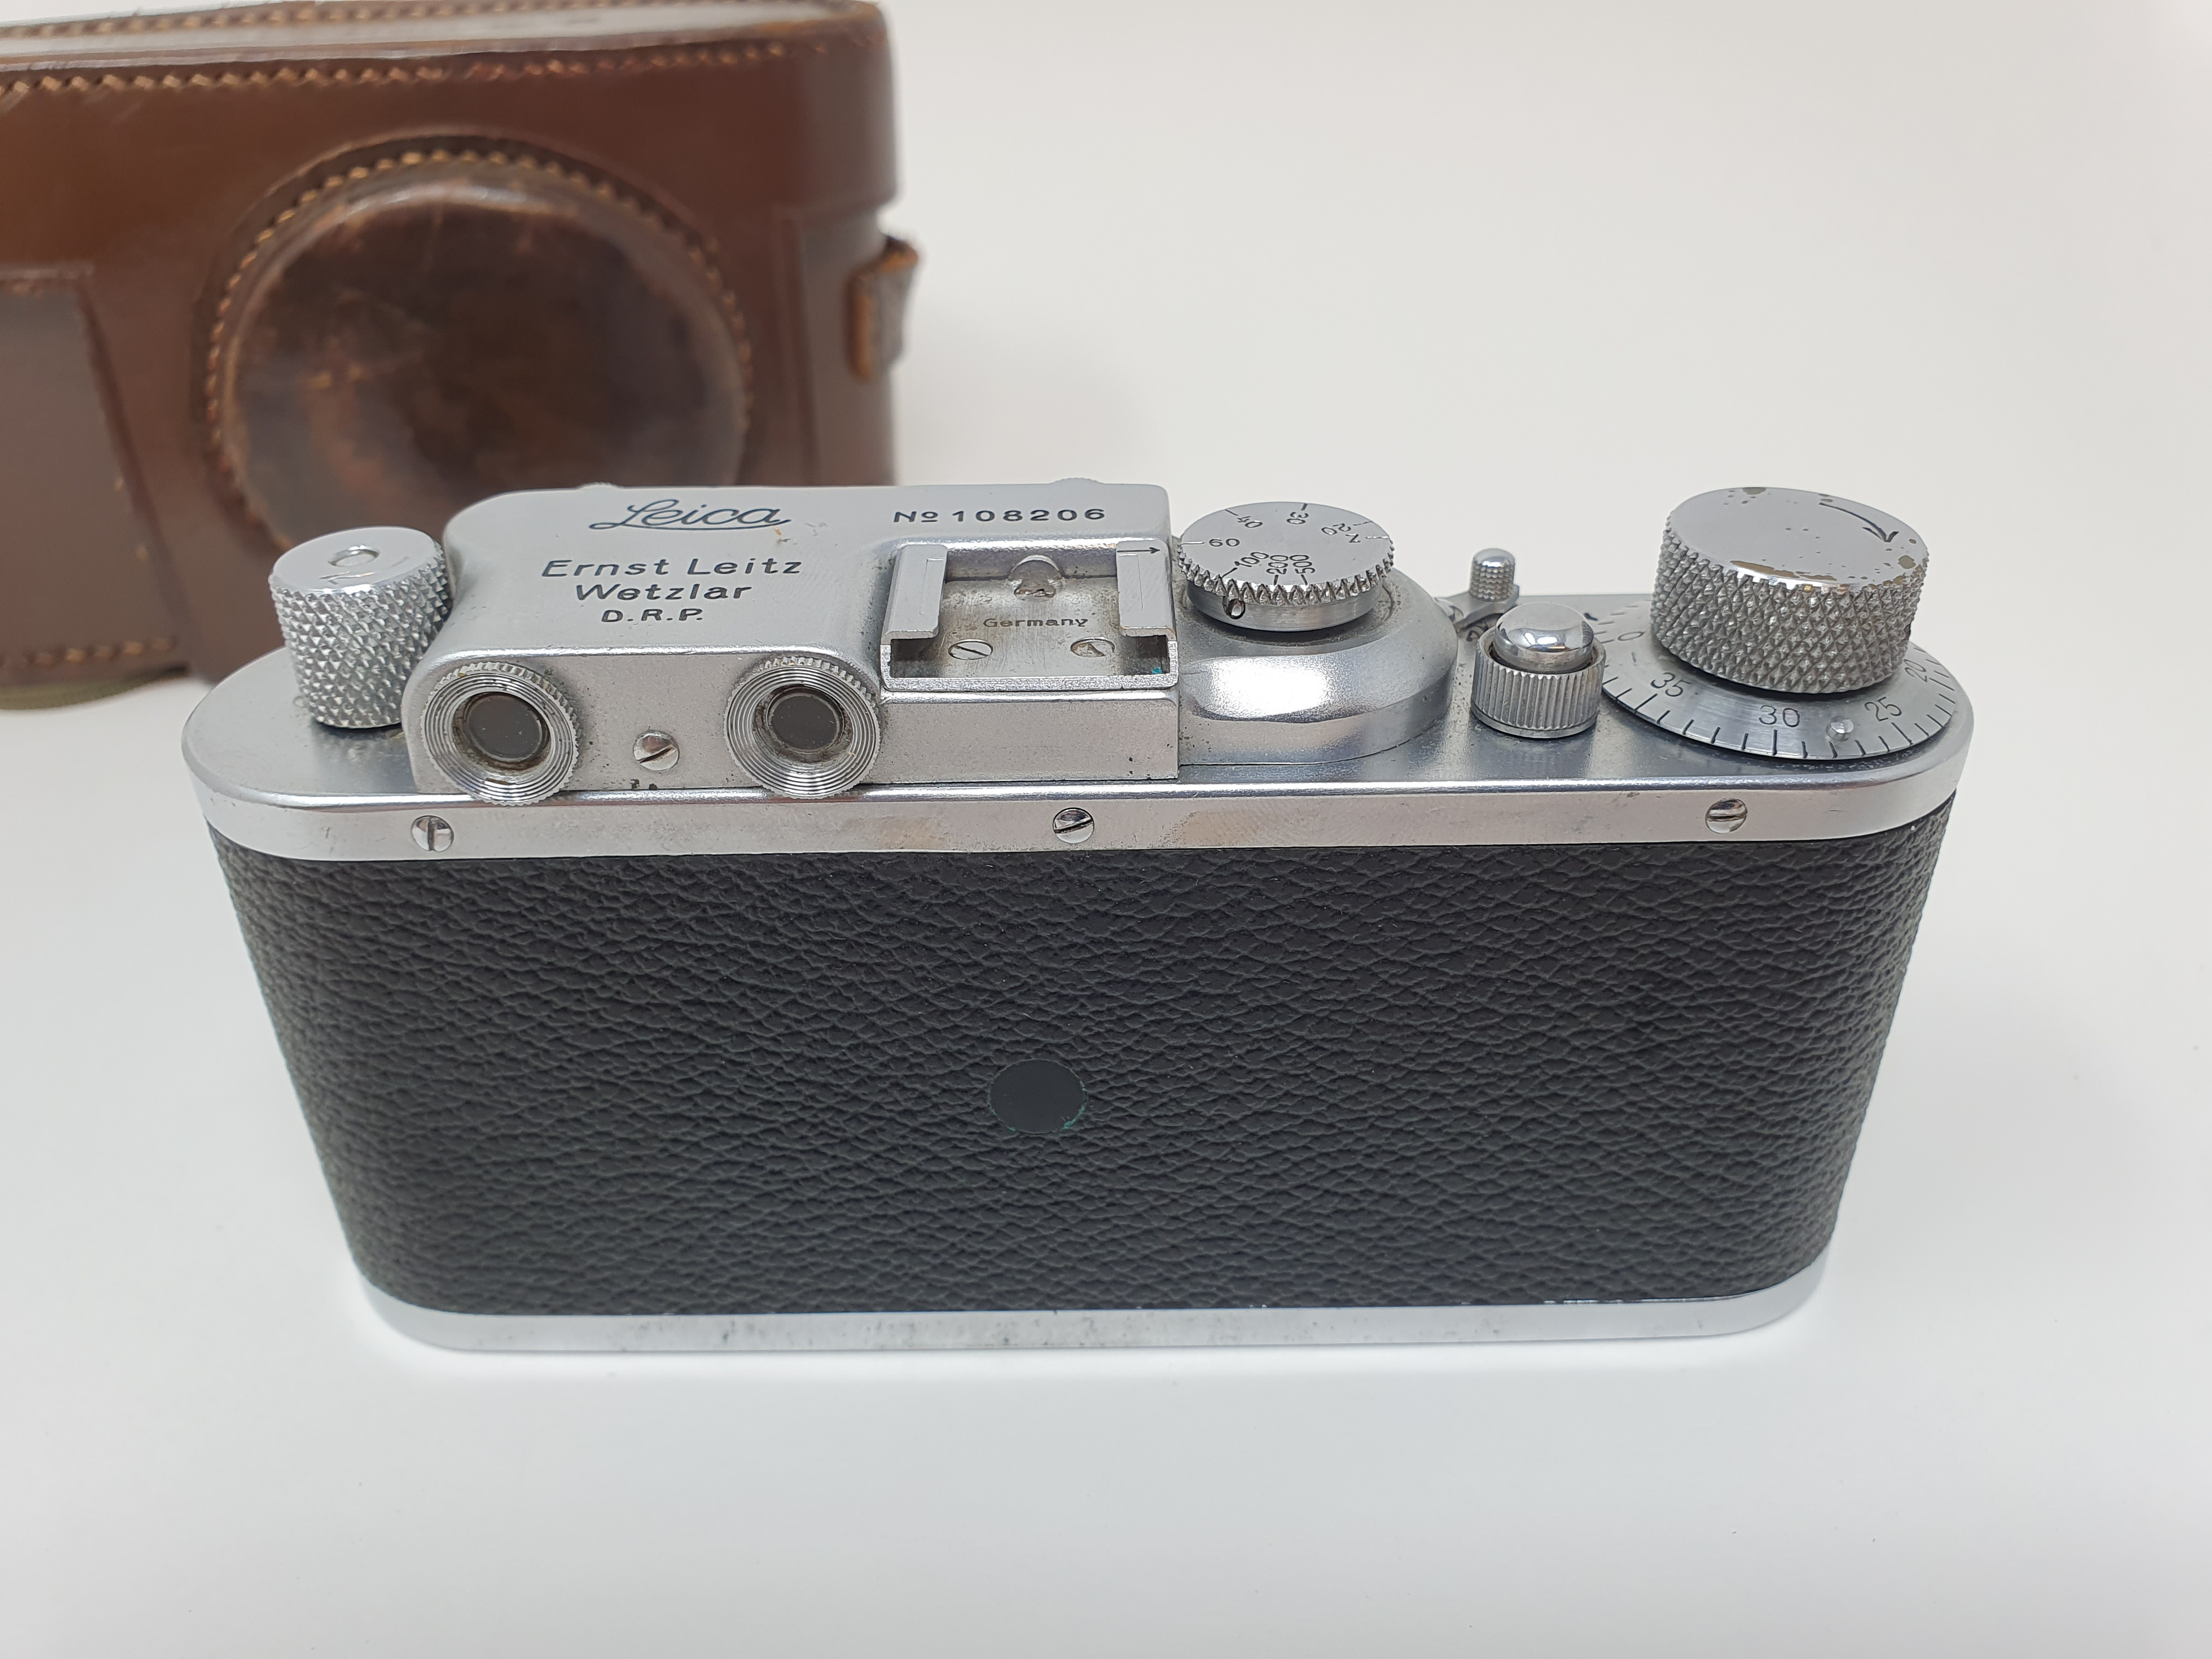 A Leica II camera, serial number 108206, with leather outer case Provenance: Part of a vast single - Image 2 of 4